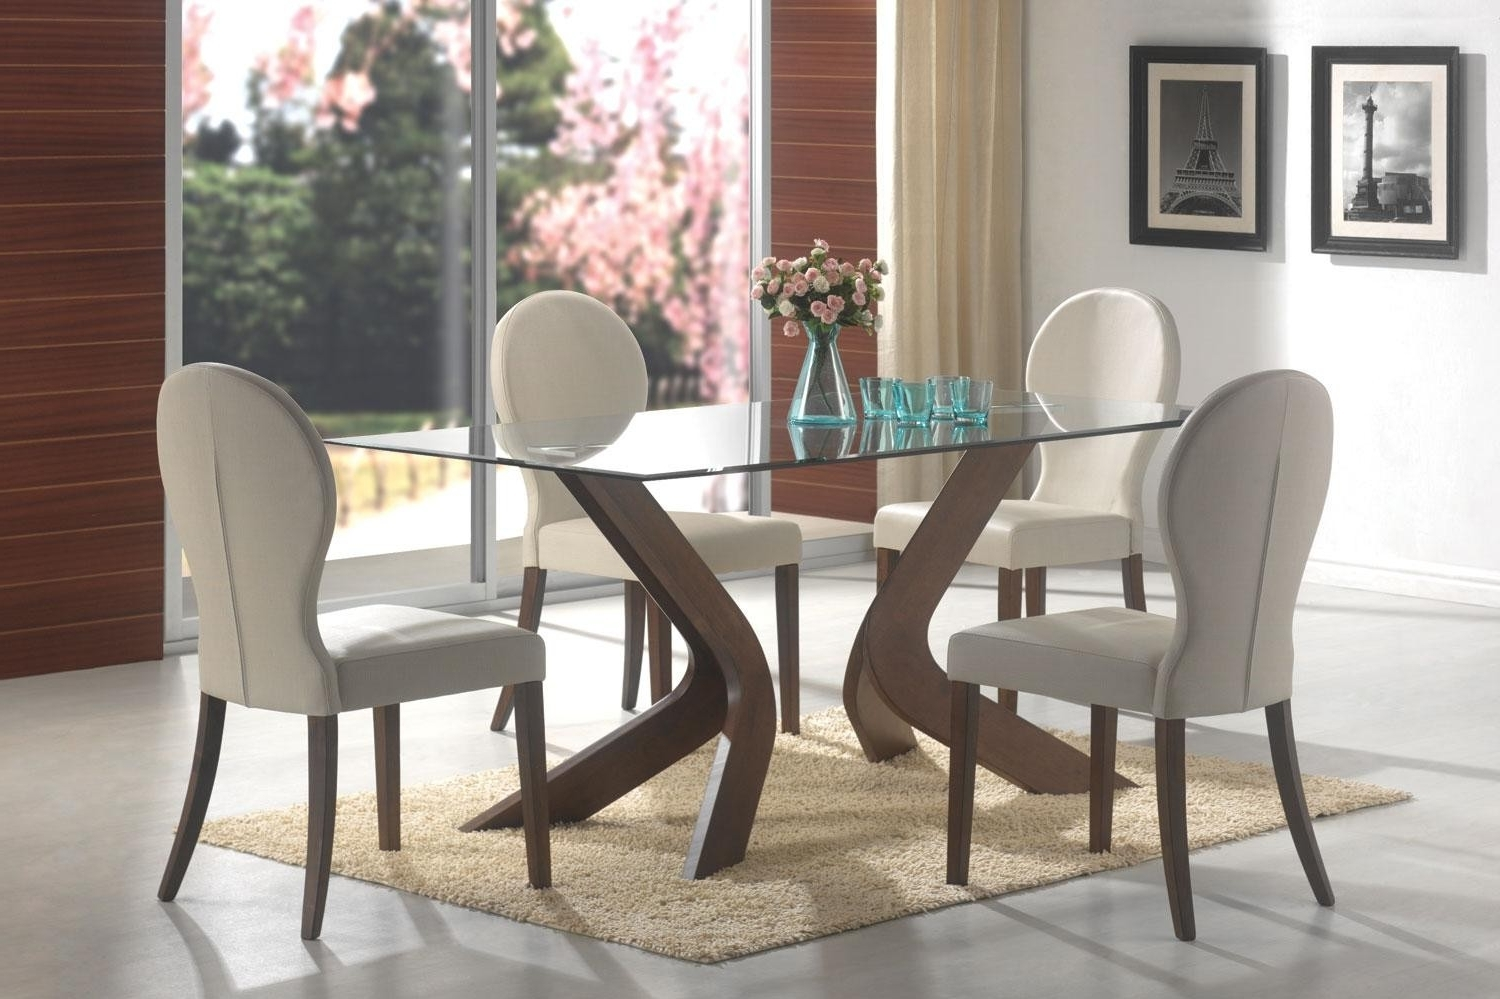 3 Essential Considerations When Choosing Glass Dining Room Table For Well Liked Glass Dining Tables Sets (View 1 of 25)